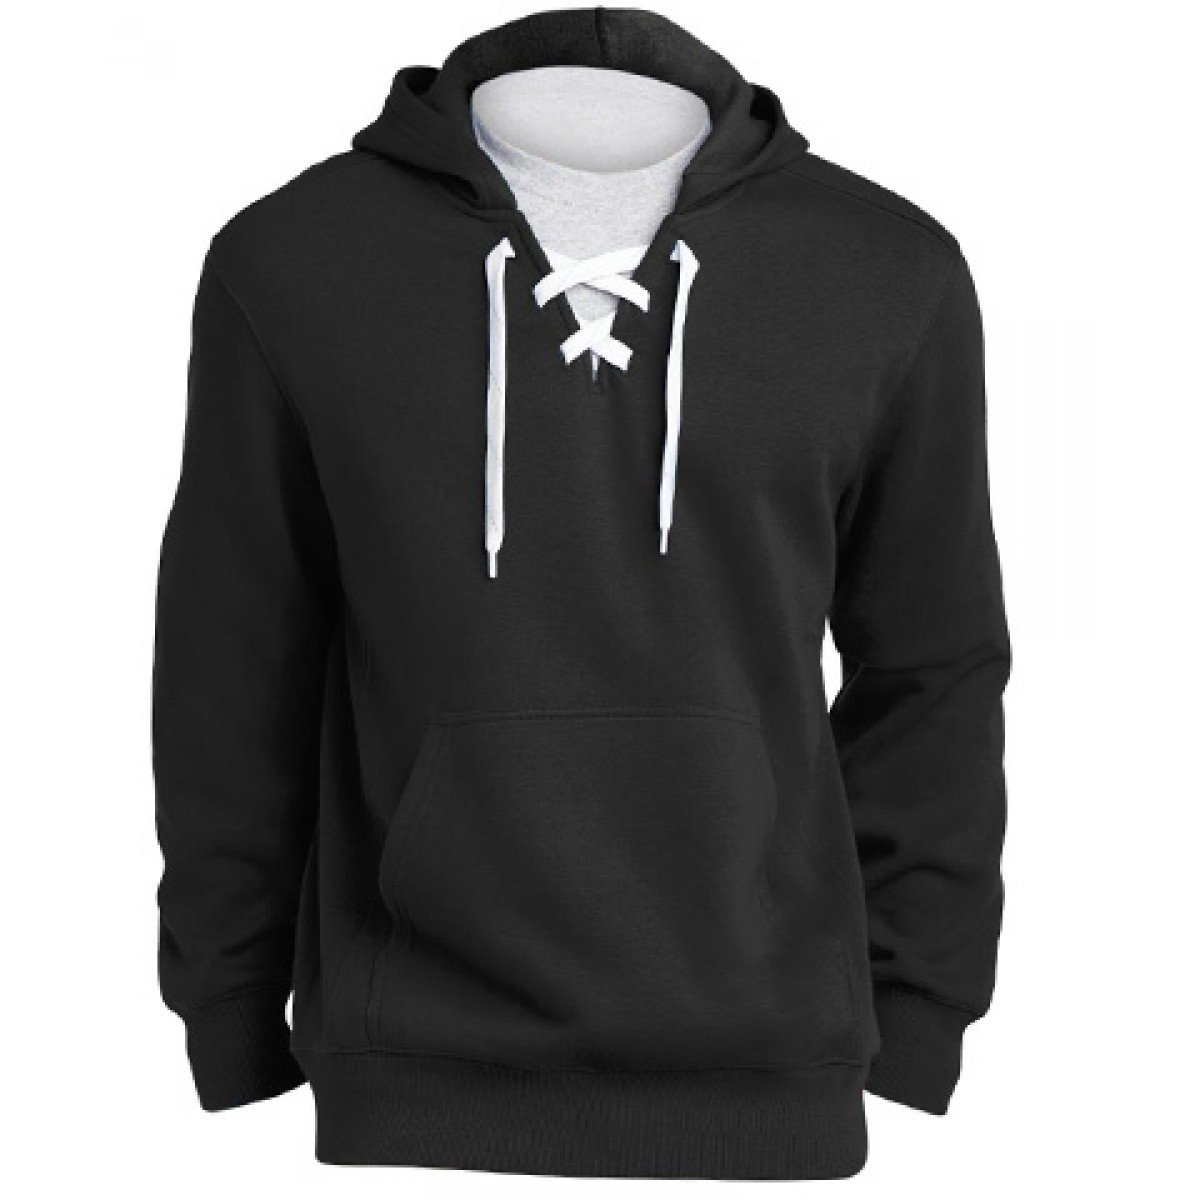 Lace Up Pullover Hooded Sweatshirt-Black-XL